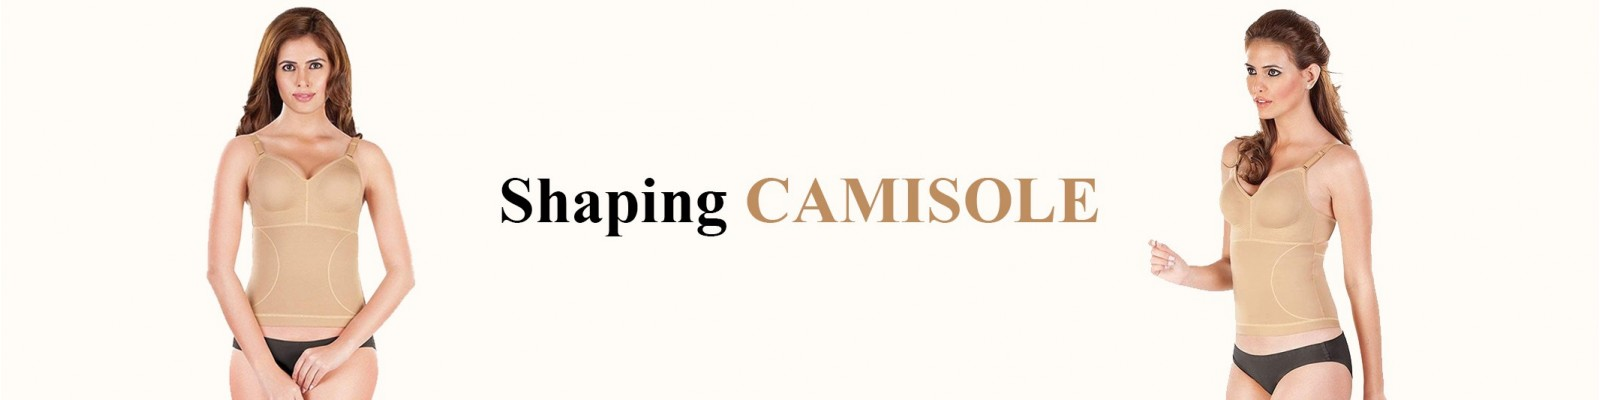 Shaping Camisole